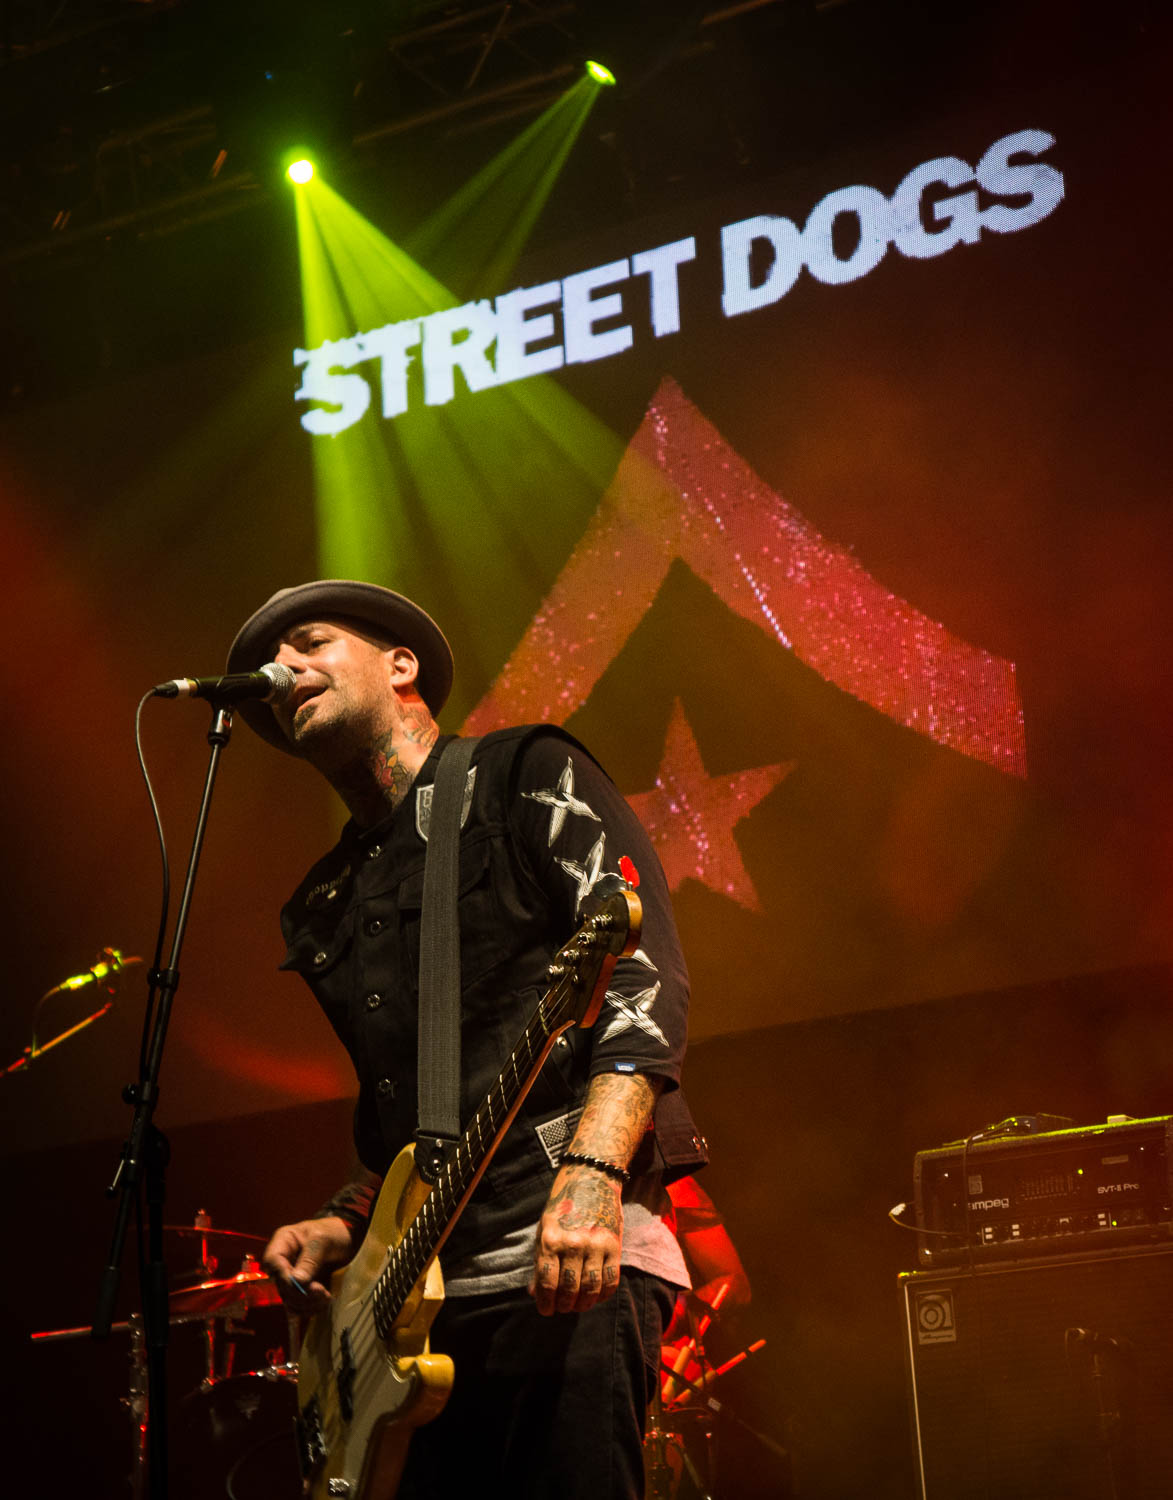 Johnny Rioux of The Street Dogs